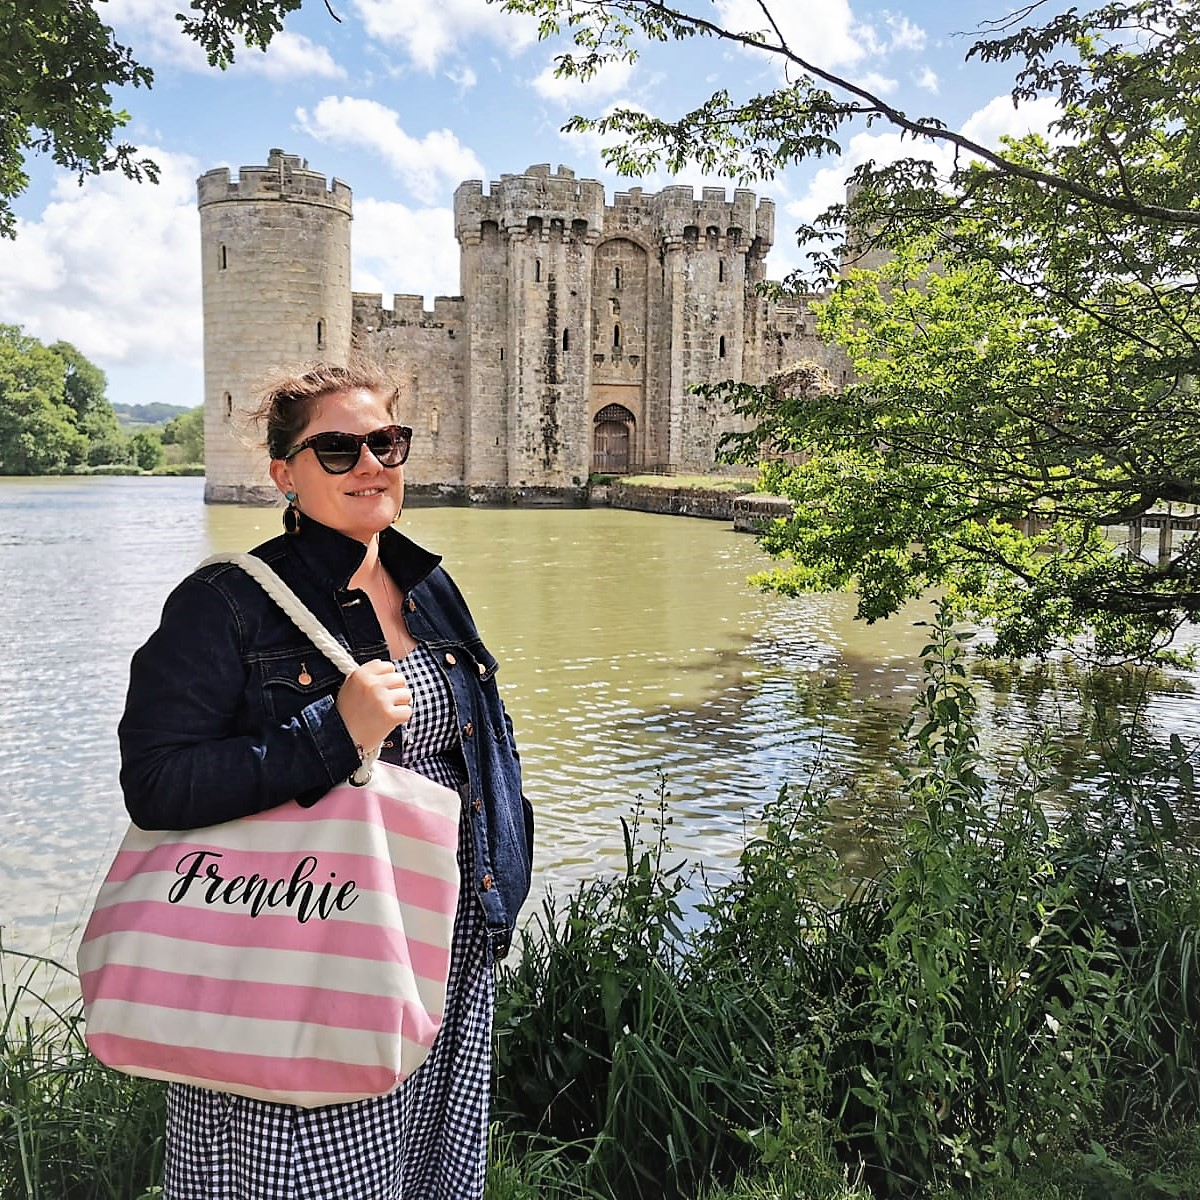 June 2020, Monthly Highlights, The Frenchie Mummy, Bodiam Castle, National Trust